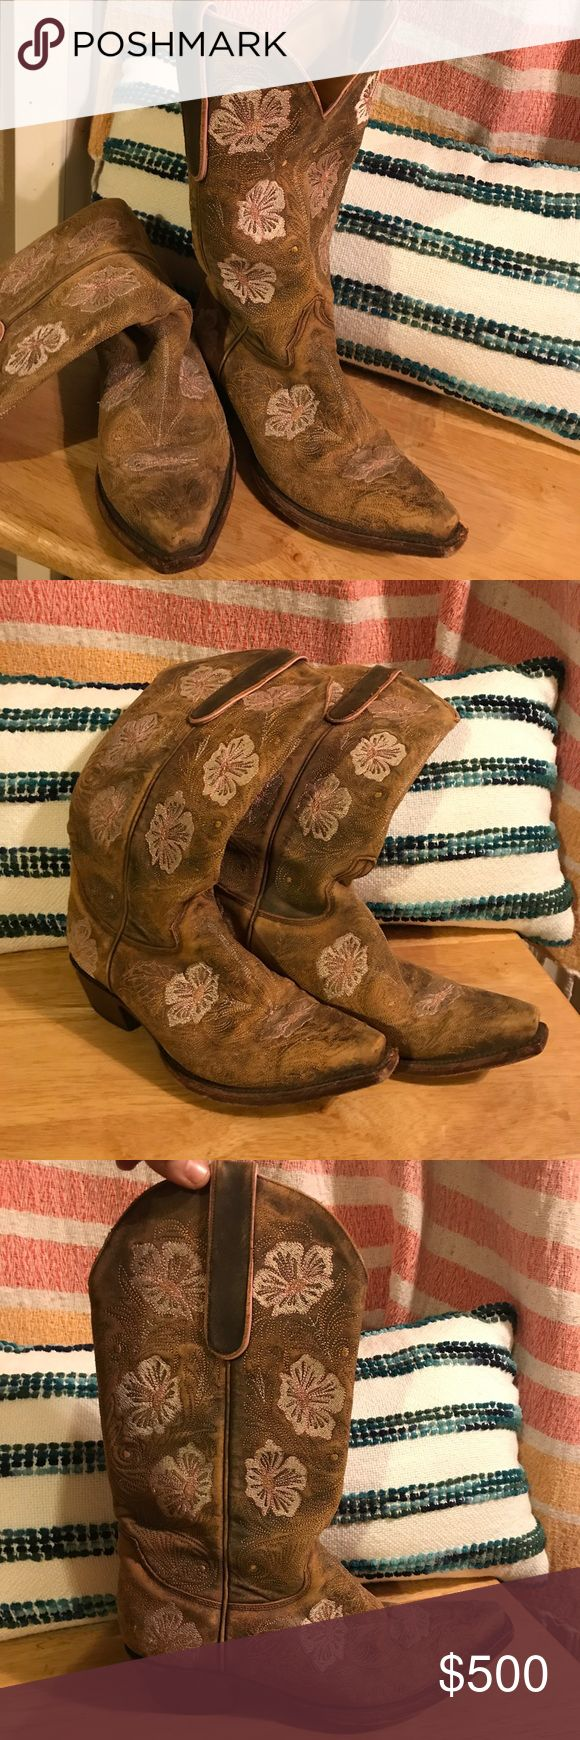 Selling this Old gringo boots on Poshmark! My username is: mprcin. #shopmycloset #poshmark #fashion #shopping #style #forsale #Old Gringo #Shoes